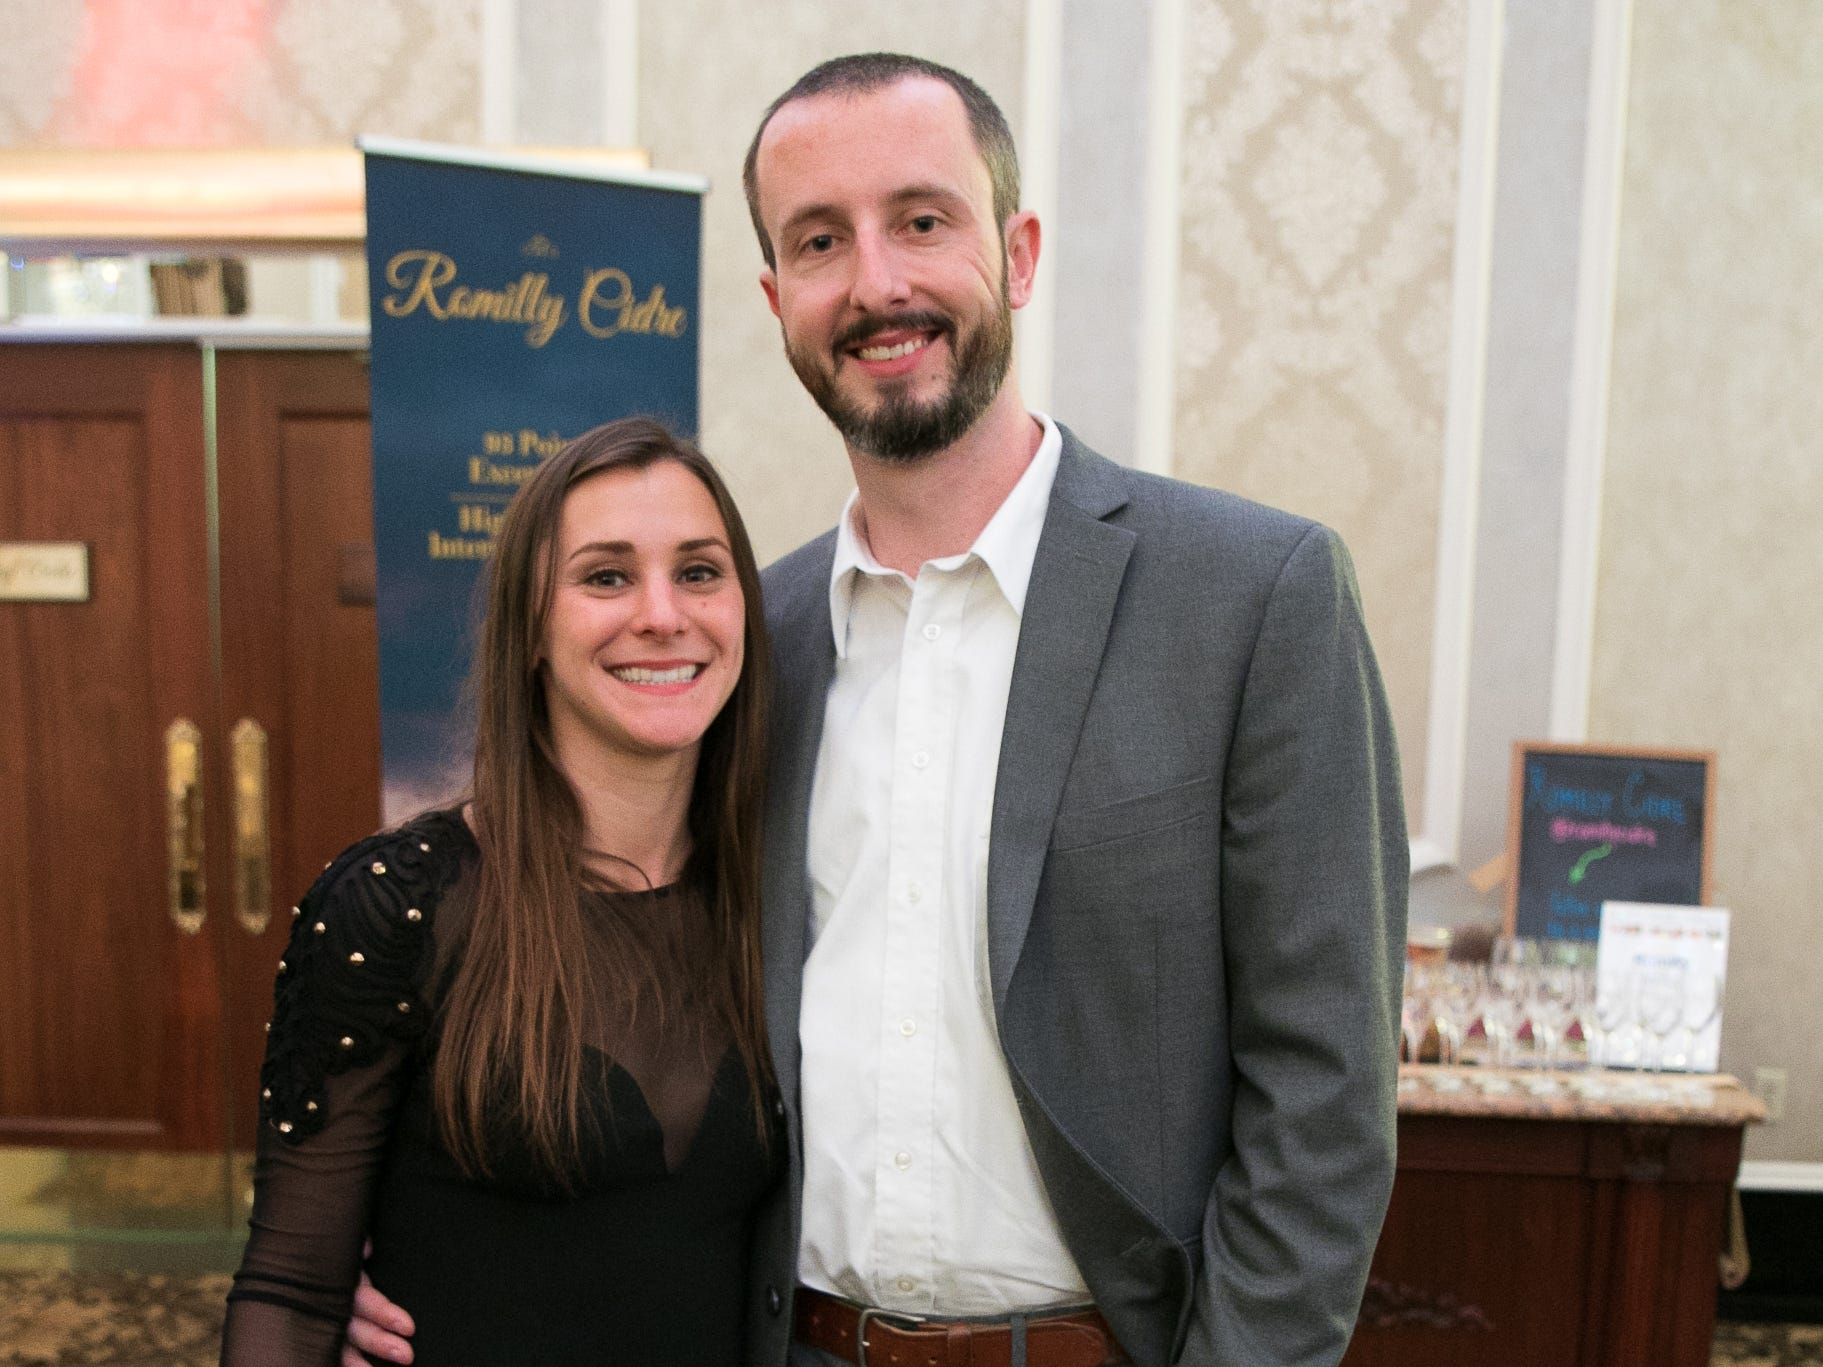 """Marlena Sofie, Ron Cassel. The New Bridge Medical Center Foundation held its 10th Annual """"A Taste of Bergen"""" at The Venetian in Garfield. The evening featured celebrity chef Chris Holland, the 2017 Grand Champion of the Food Network's """"Chopped."""" 11/12/2018"""